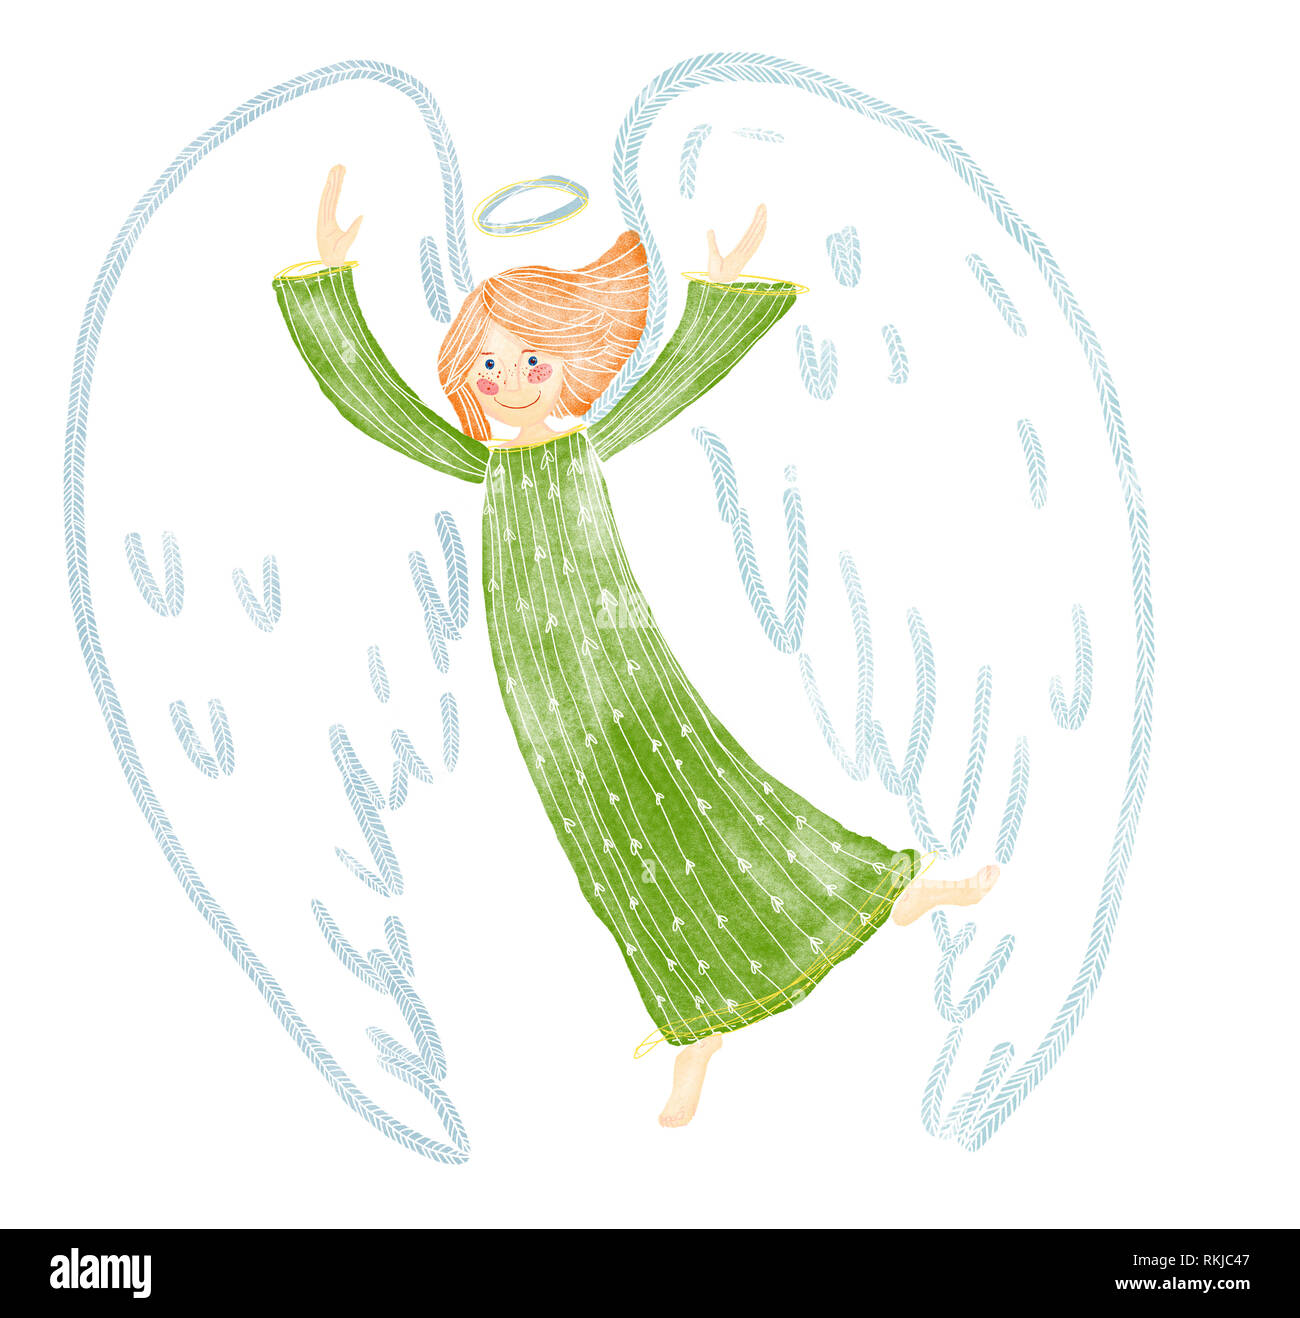 A digital watecolor illustration of happy, dancing guardian angel in shades of green, orange, color. Ginger hair. - Stock Image